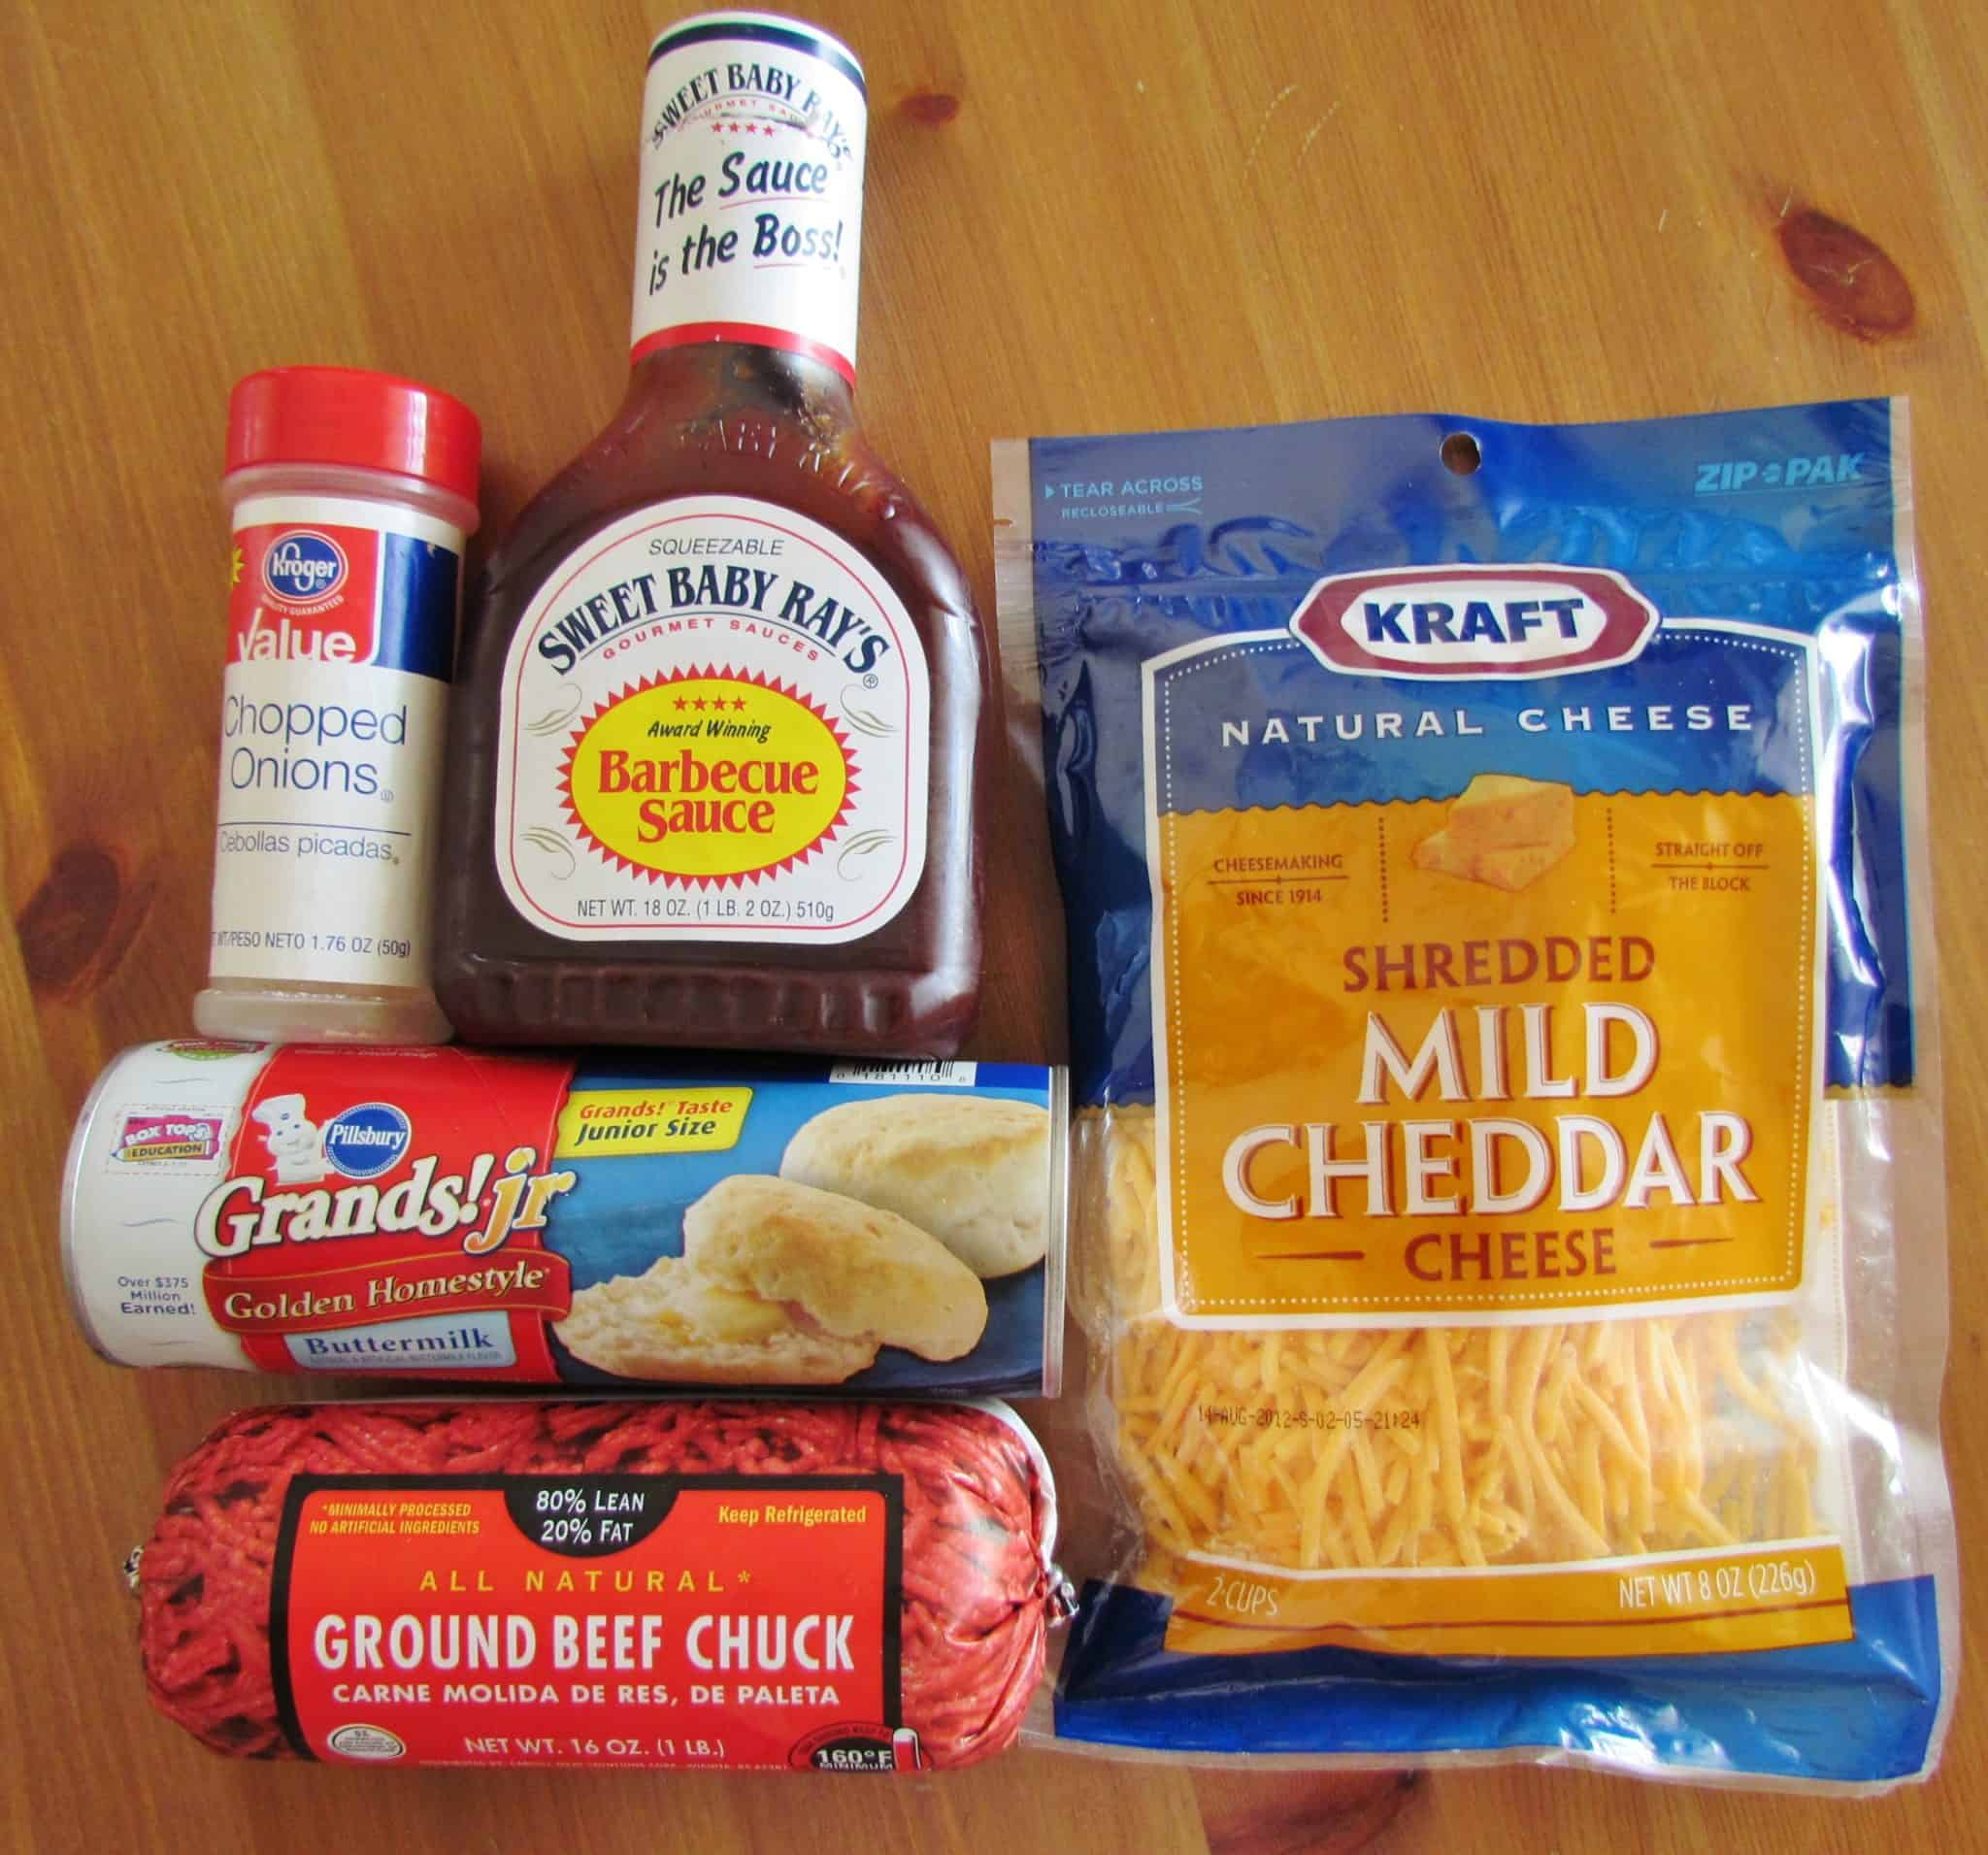 refrigerated biscuits, ground beef, shredded cheese, barbecue sauce, onions.